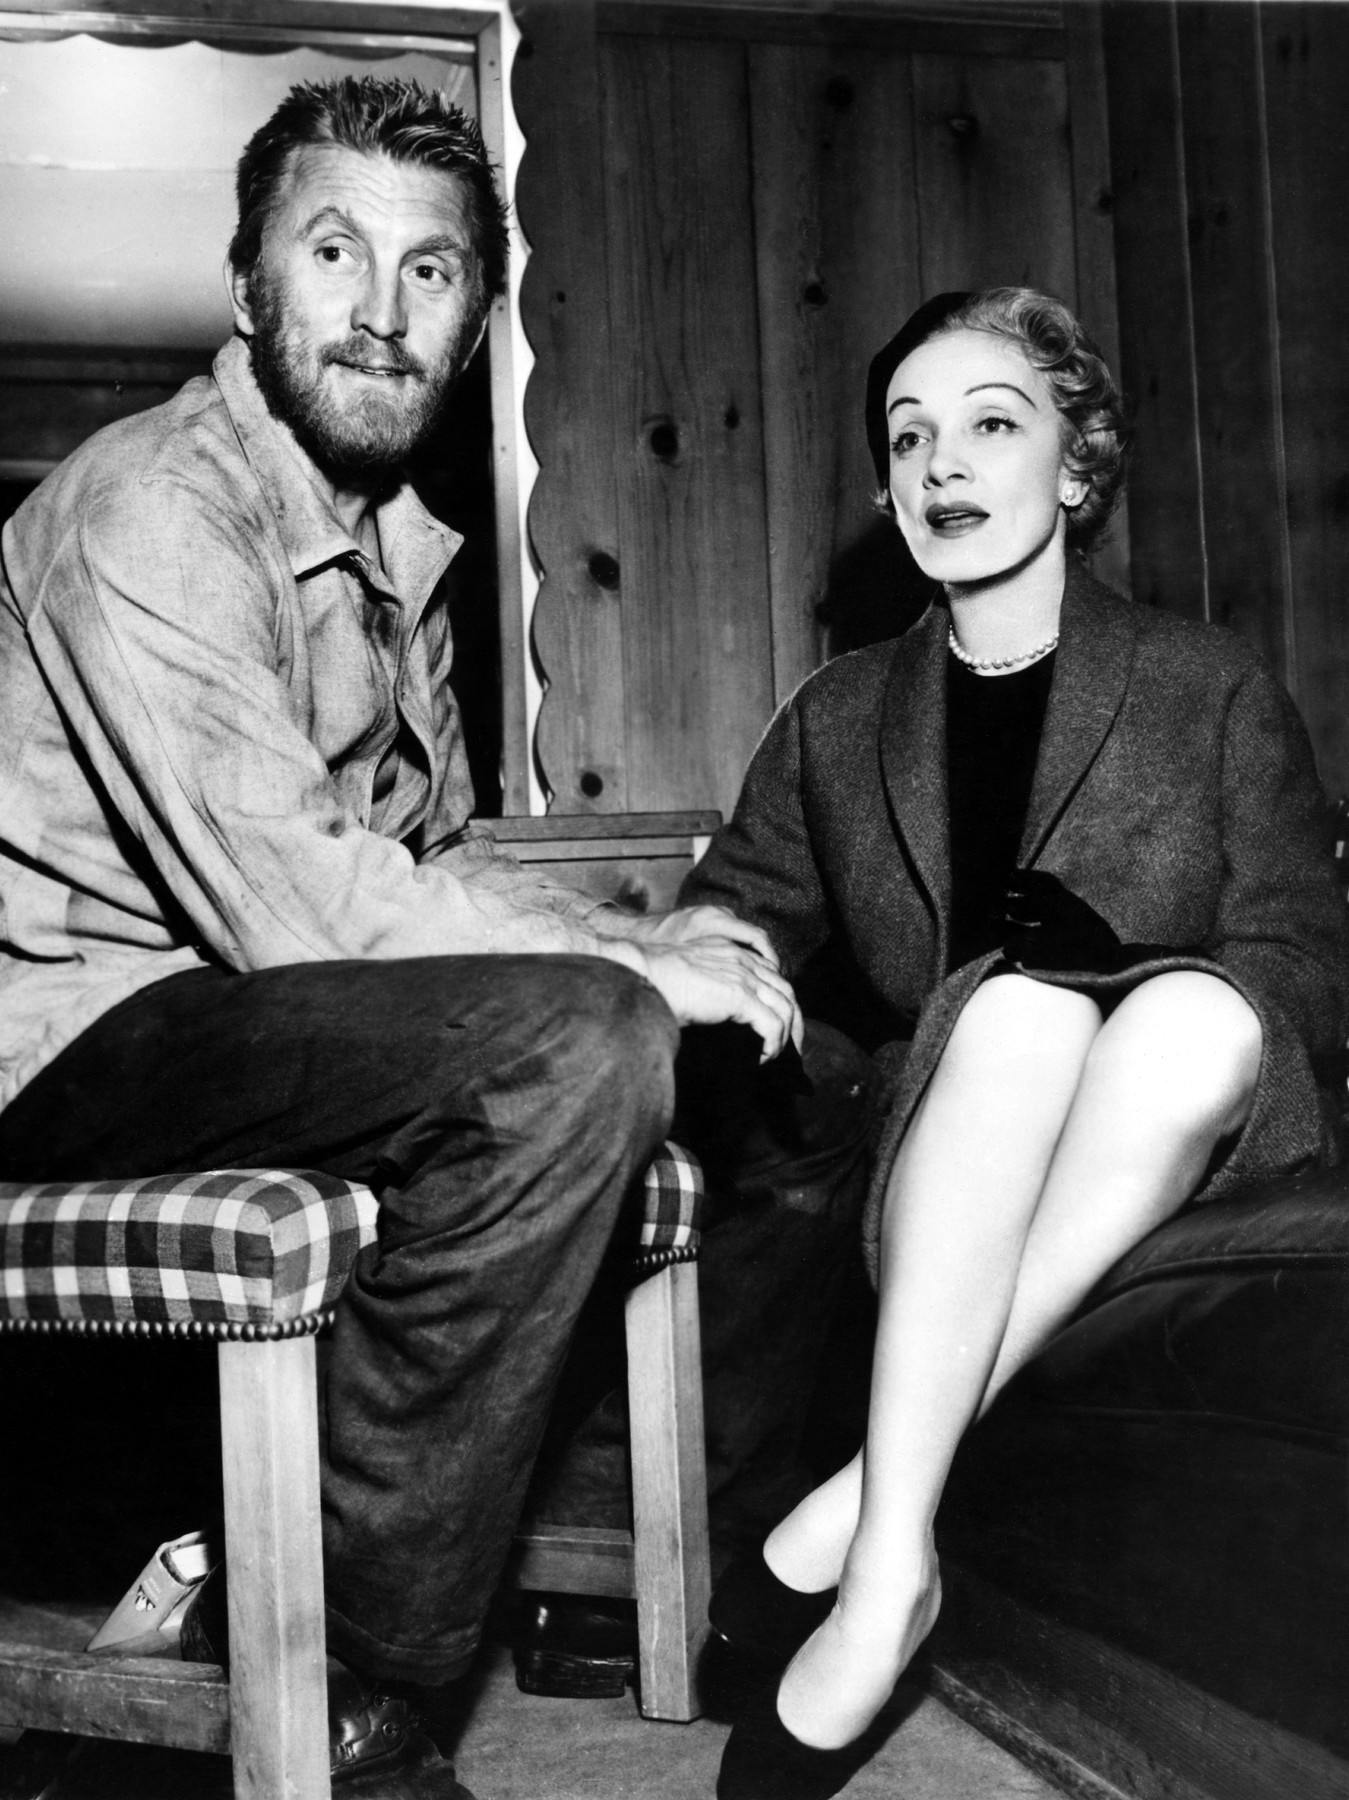 LUST FOR LIFE, Kirk Douglas, Marlene Dietrich on the set, 1956, Image: 307590290, License: Rights-managed, Restrictions: Courtesy Everett Collection, Model Release: no, Credit line: Courtesy Everett Collection / Everett / Profimedia